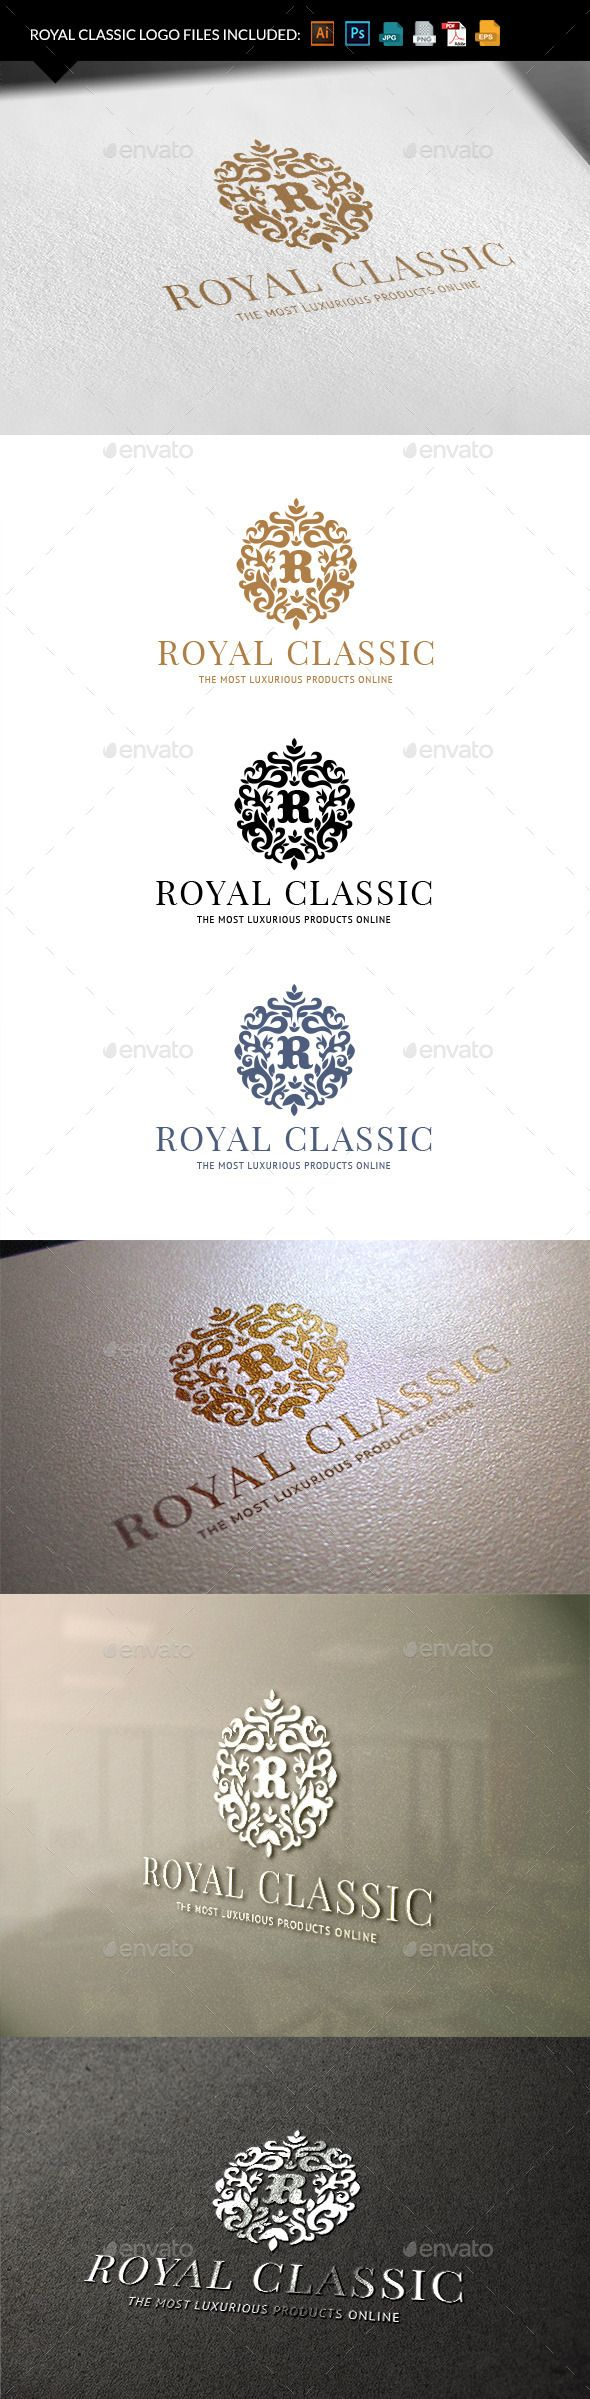 Royal Classic Logo Template #design #logodesign Download: http://graphicriver.net/item/royal-classic/9940997?ref=ksioks